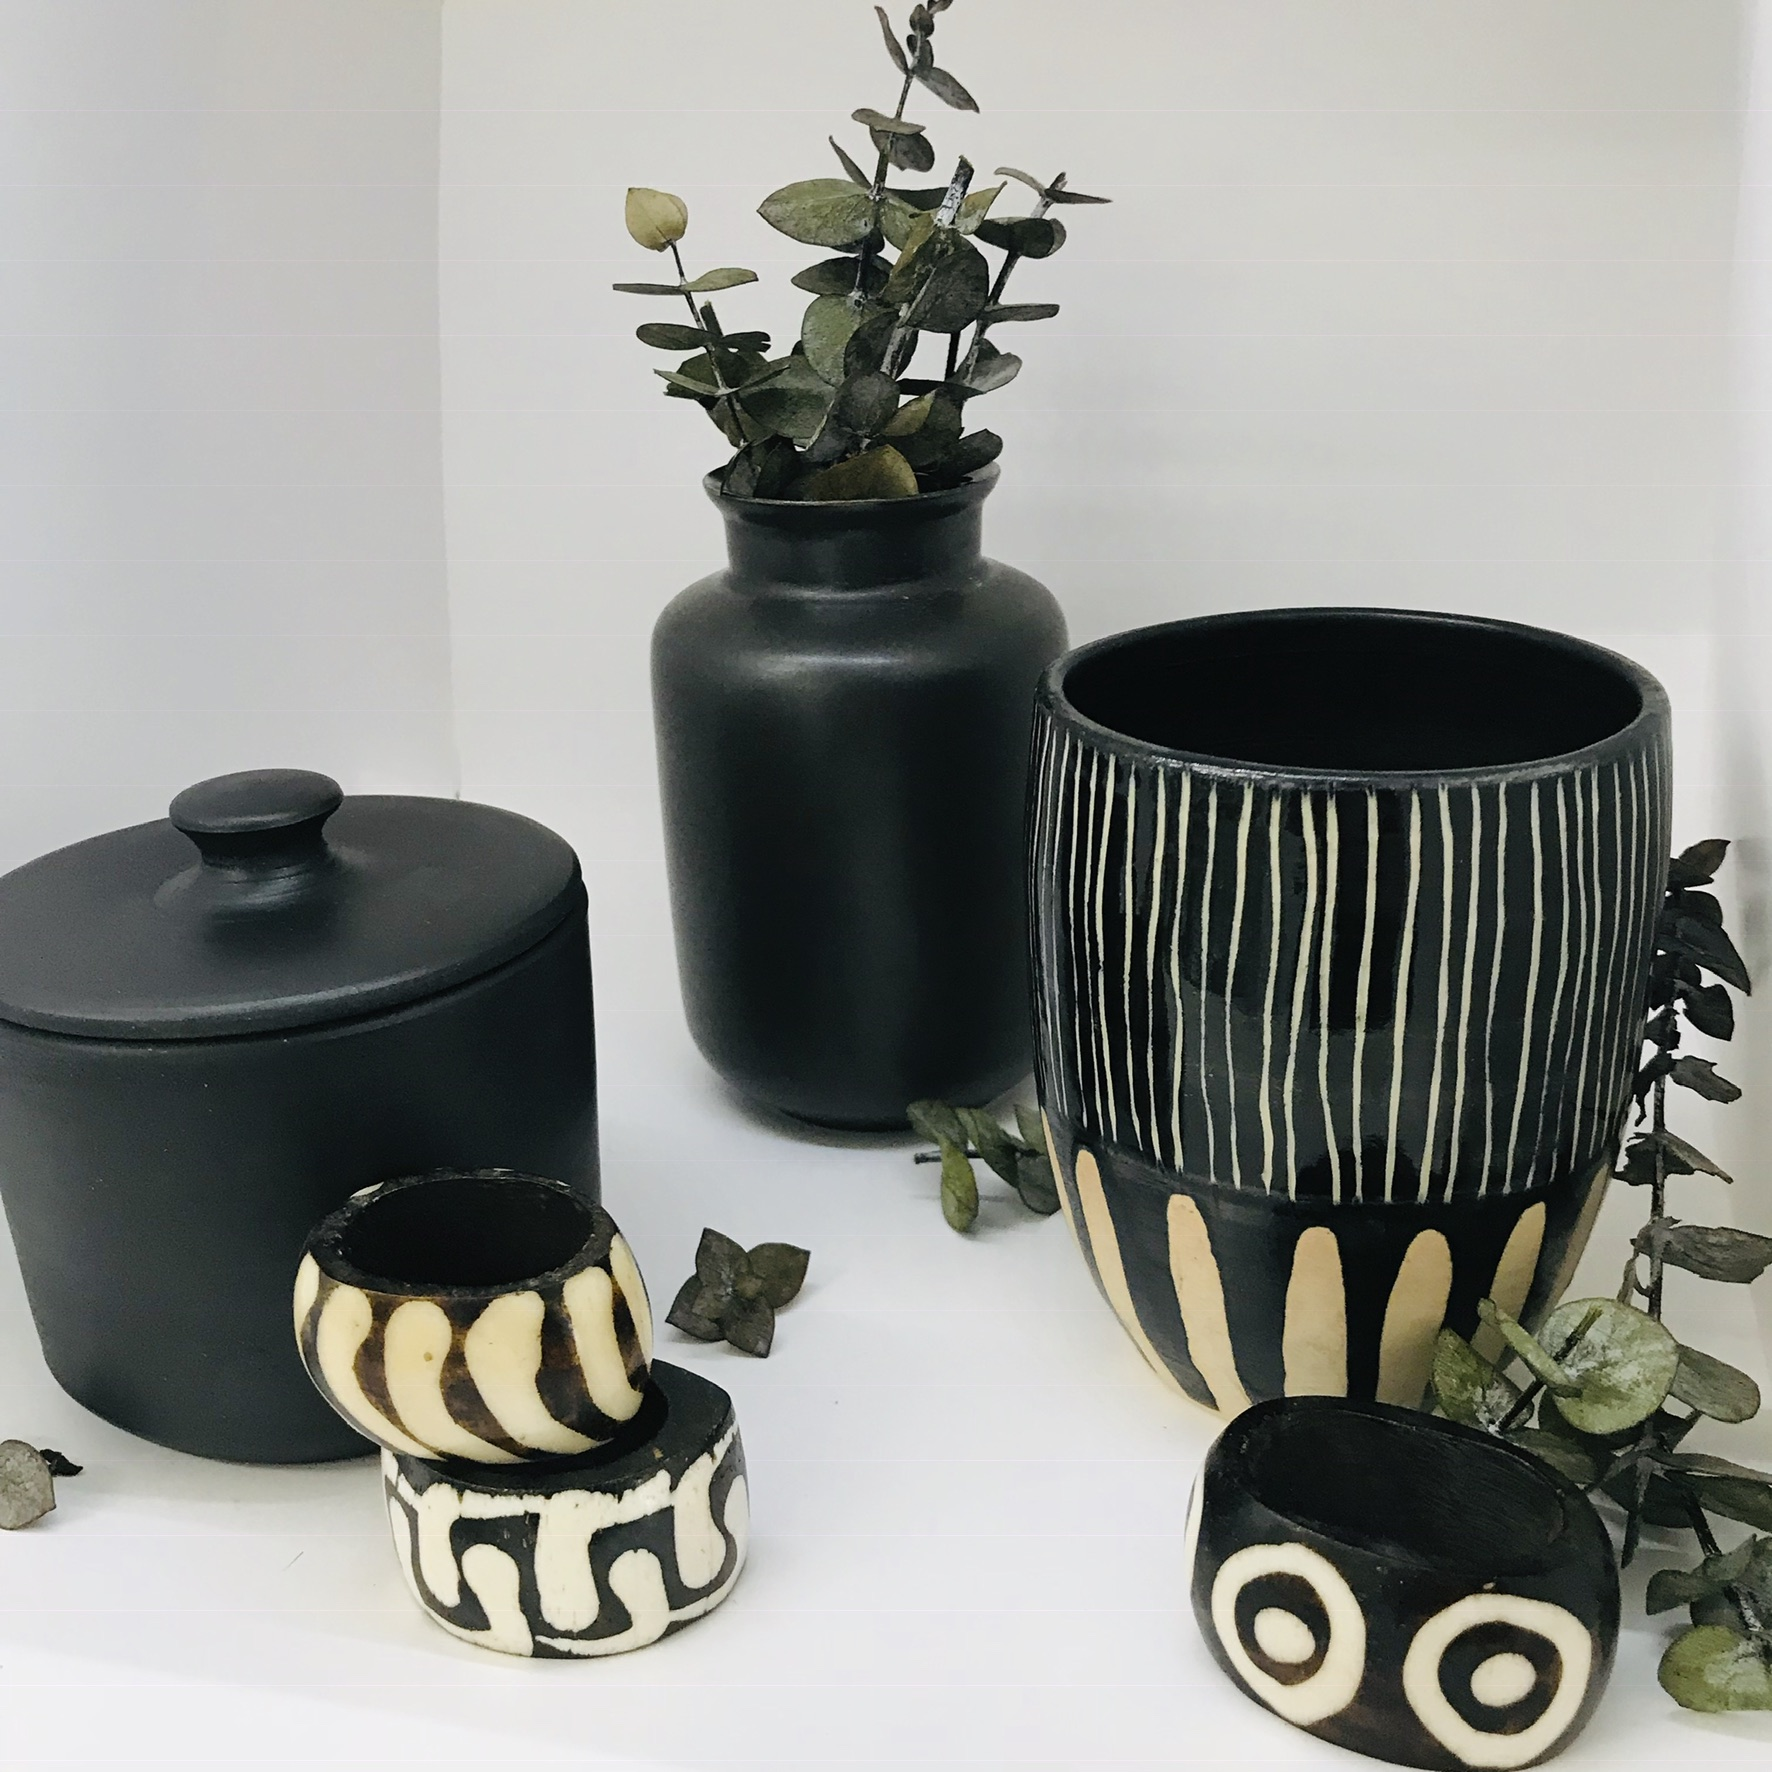 Gifts for your Boyfriend - Gift the gift he really needs, house decor and accessories like our Kenyan napkin holders, cup sets, and planters. Bonus you can use them too.